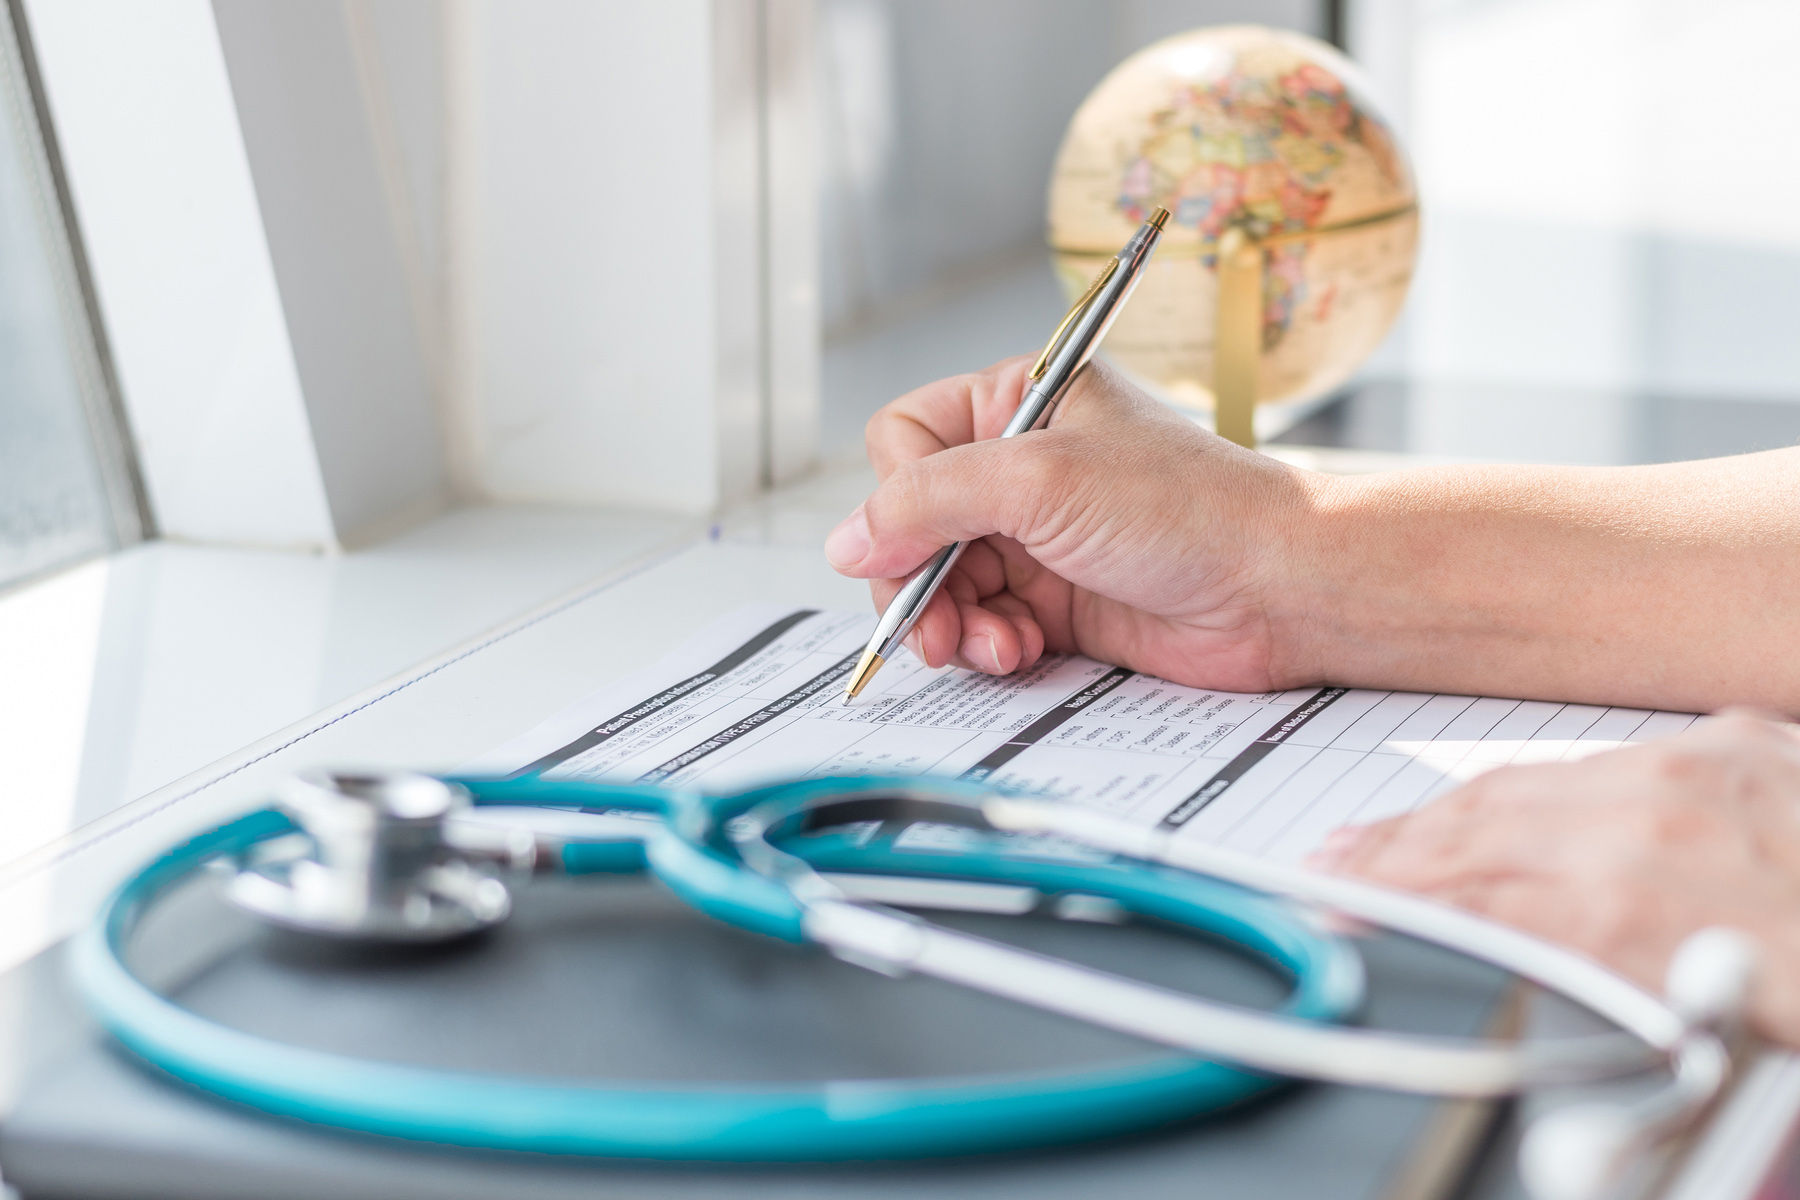 Filling out a medical form